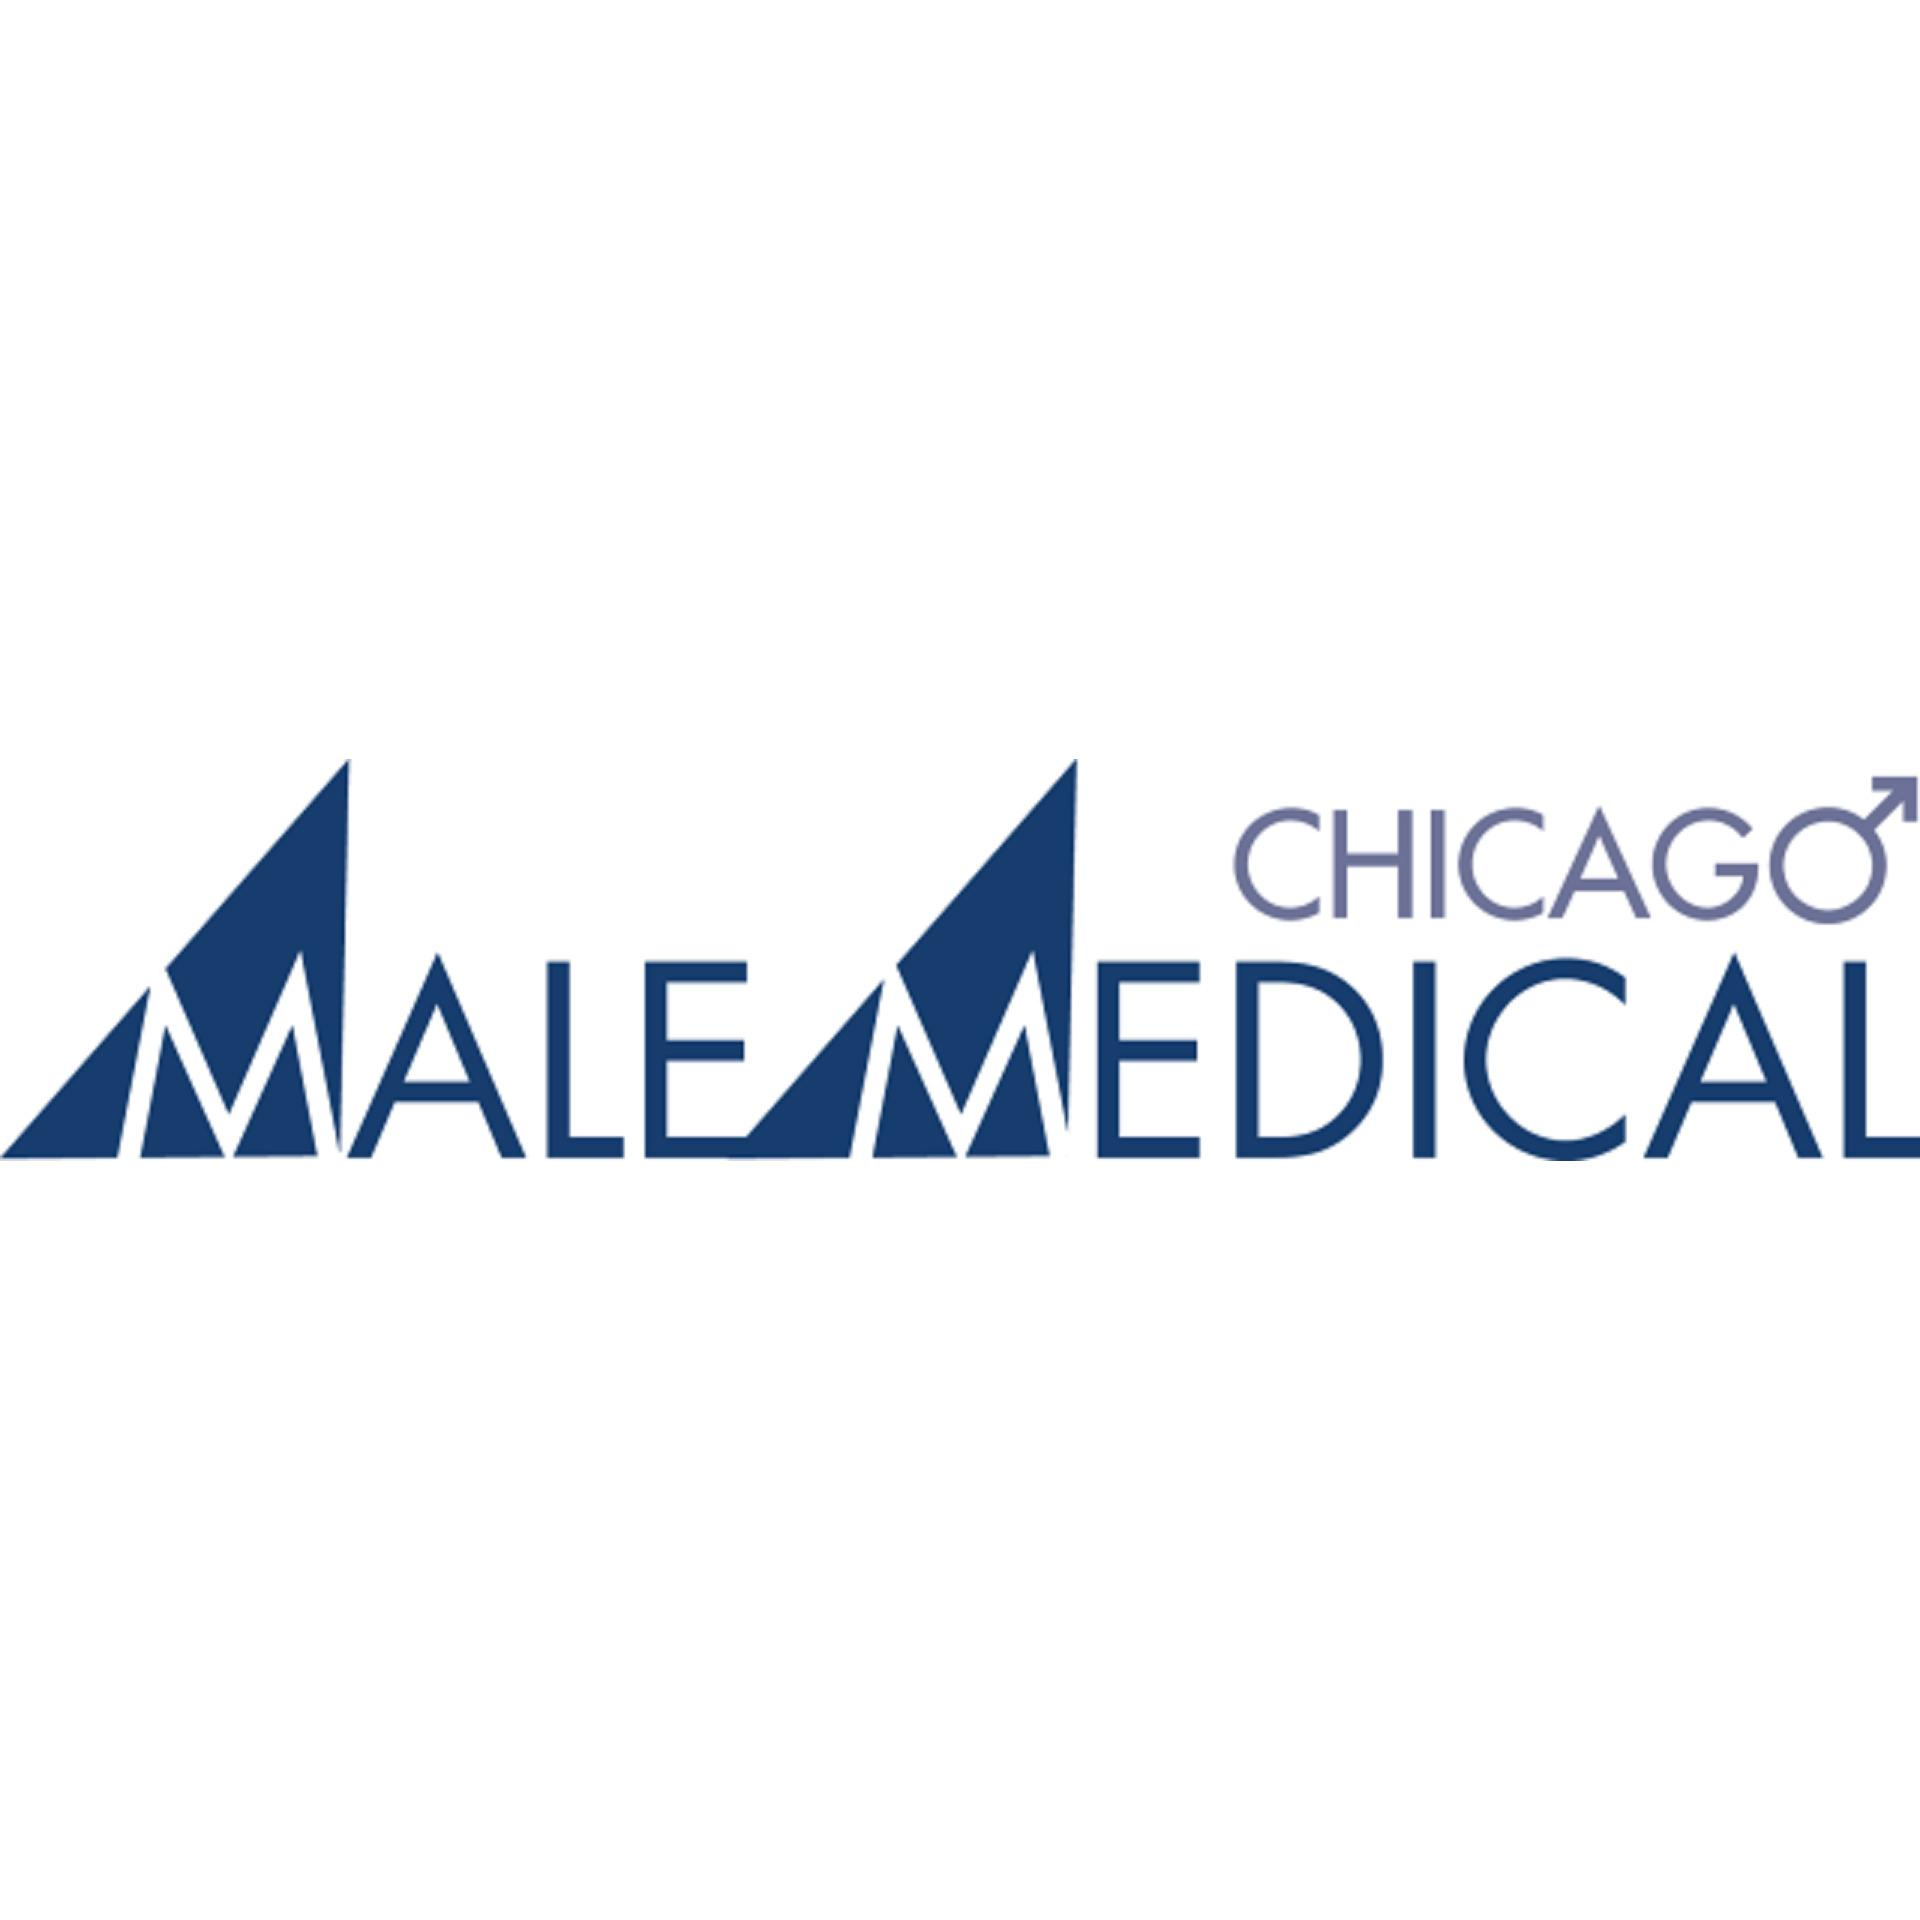 Male Medical of Chicago